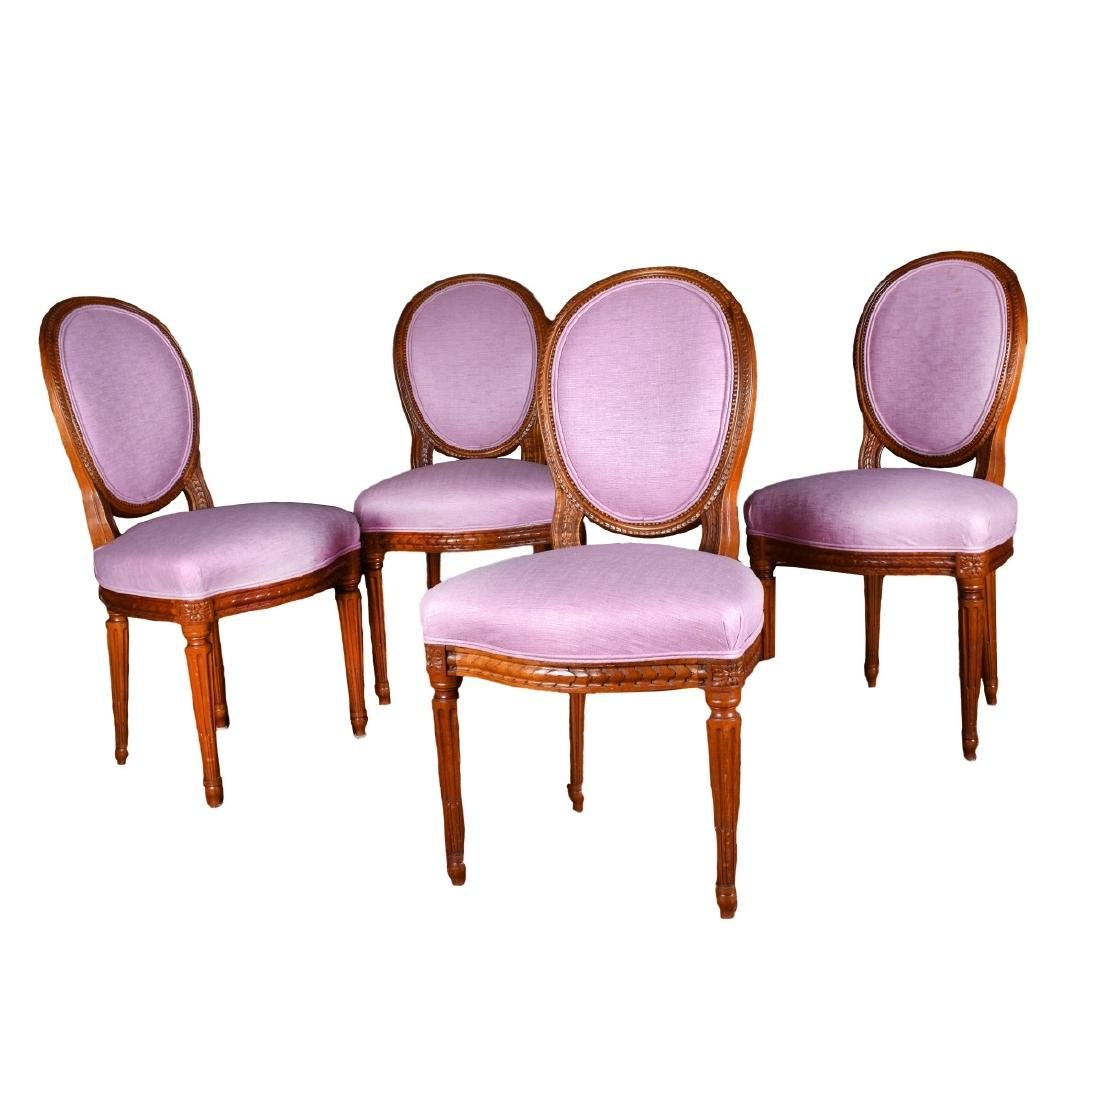 Four (4) French Louis XVI Style Side Chairs